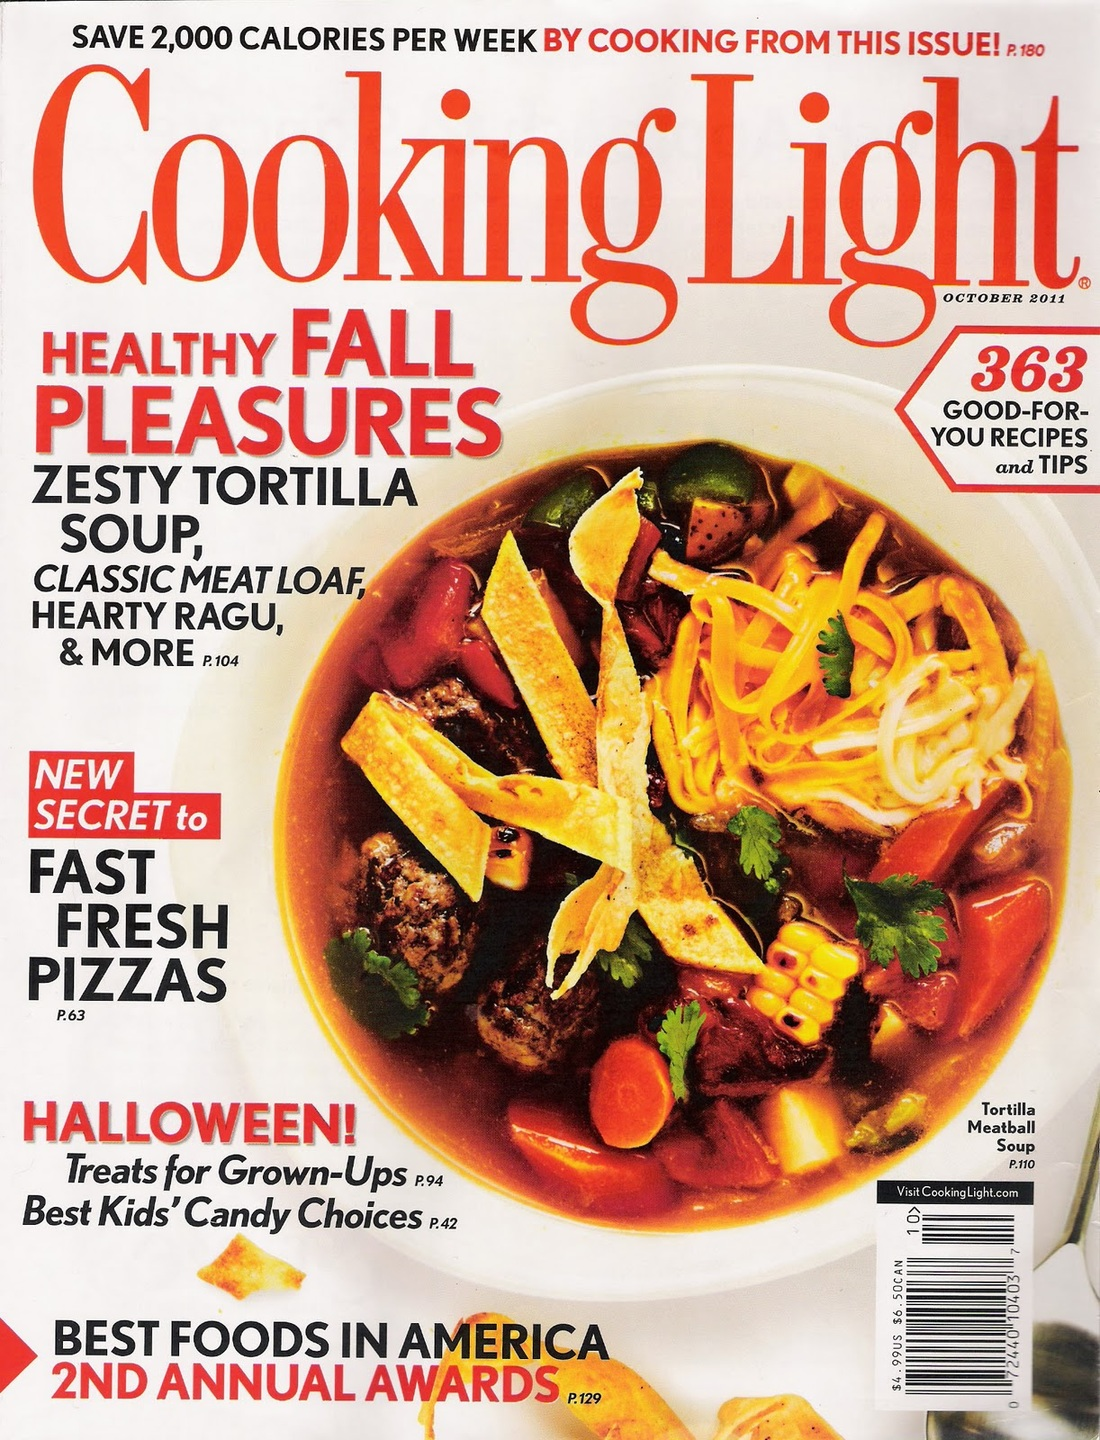 Cooking light ambers media blog cooking light magazine has their own app on both iphone and android this was created to expand their customer bases by appealing to a younger generation forumfinder Images